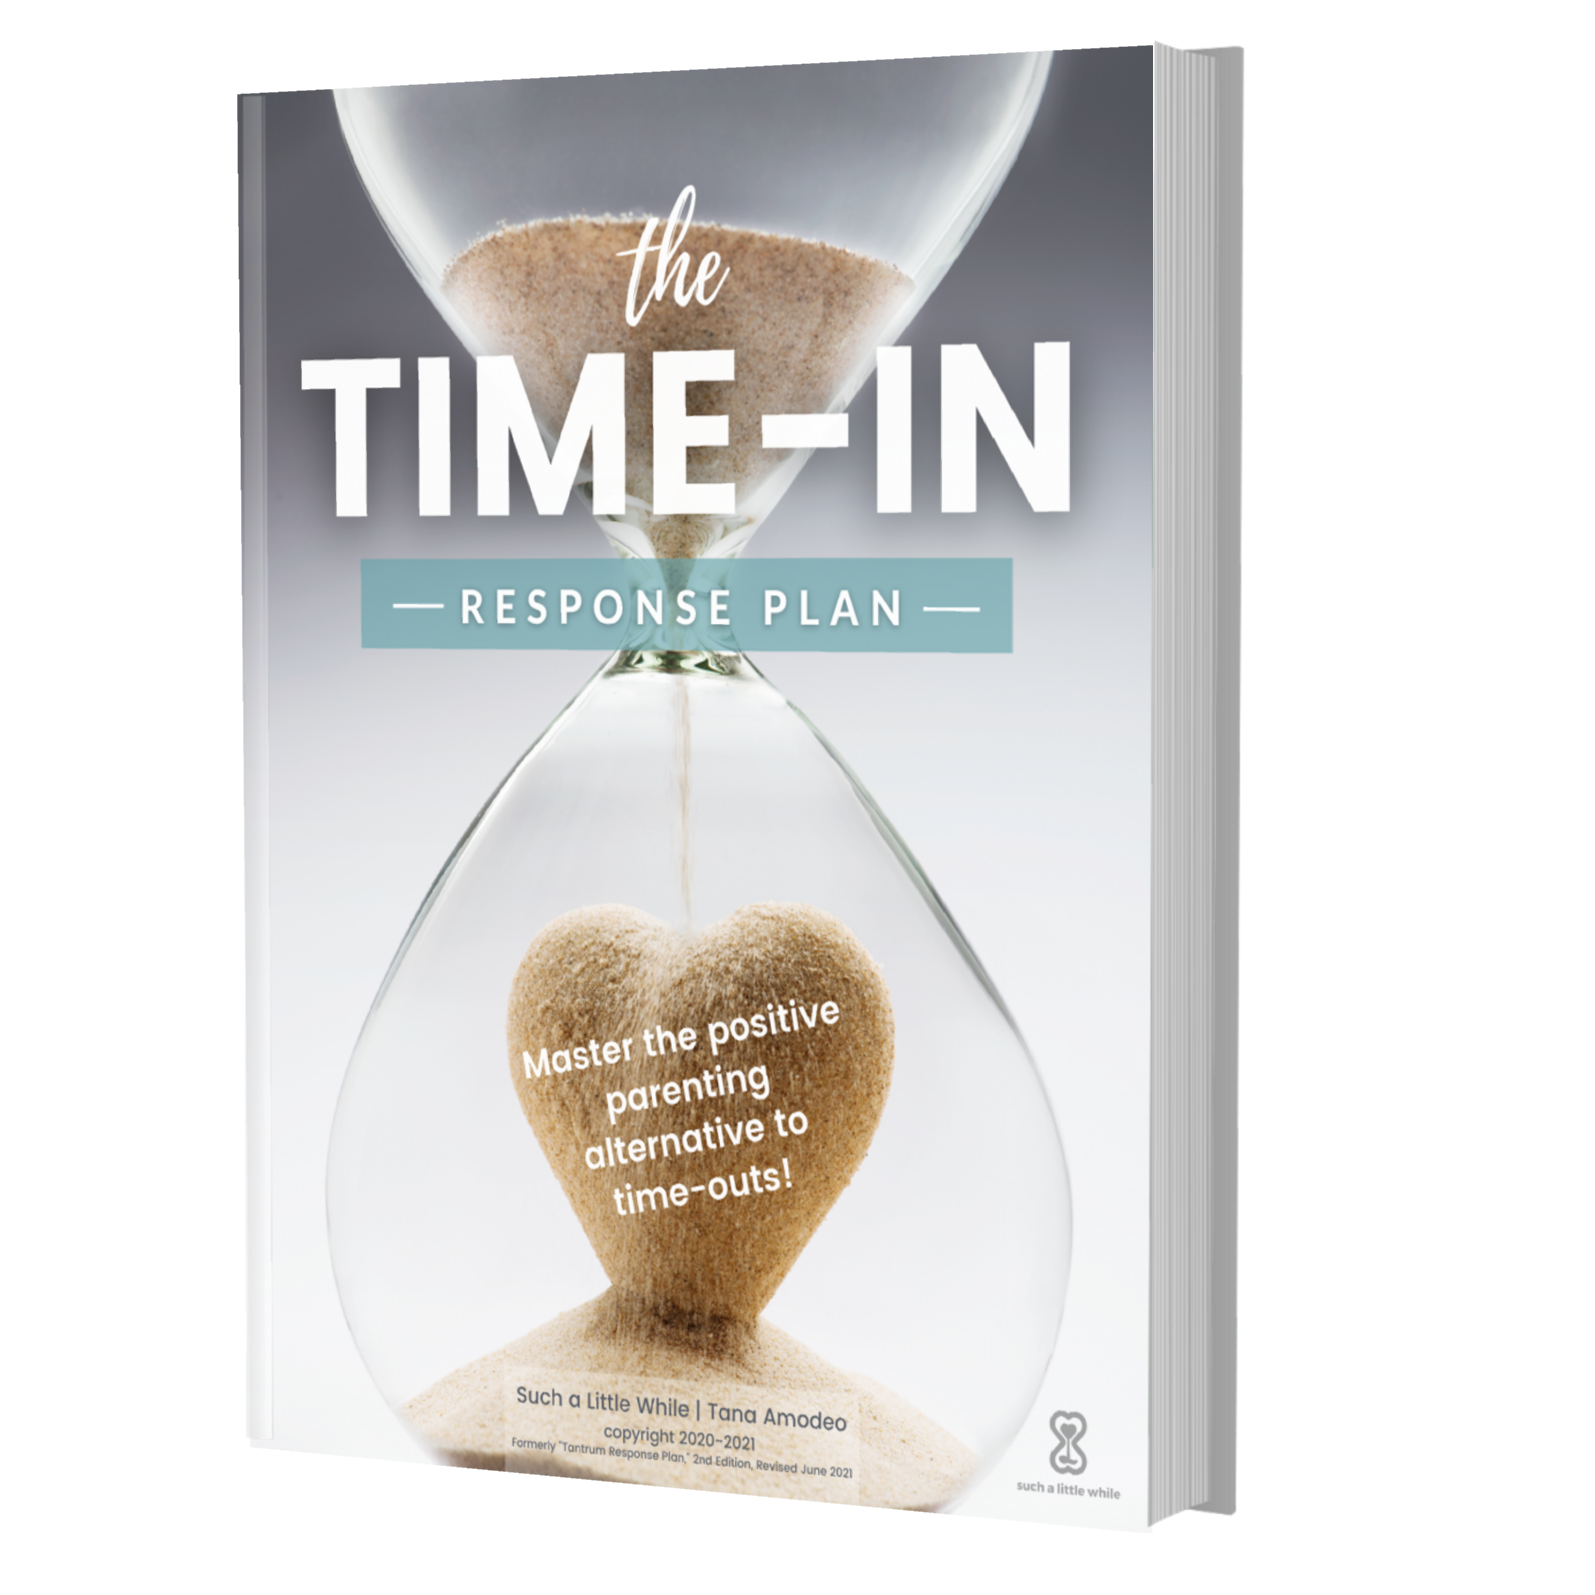 The Time-In Response Plan by Such a Little While